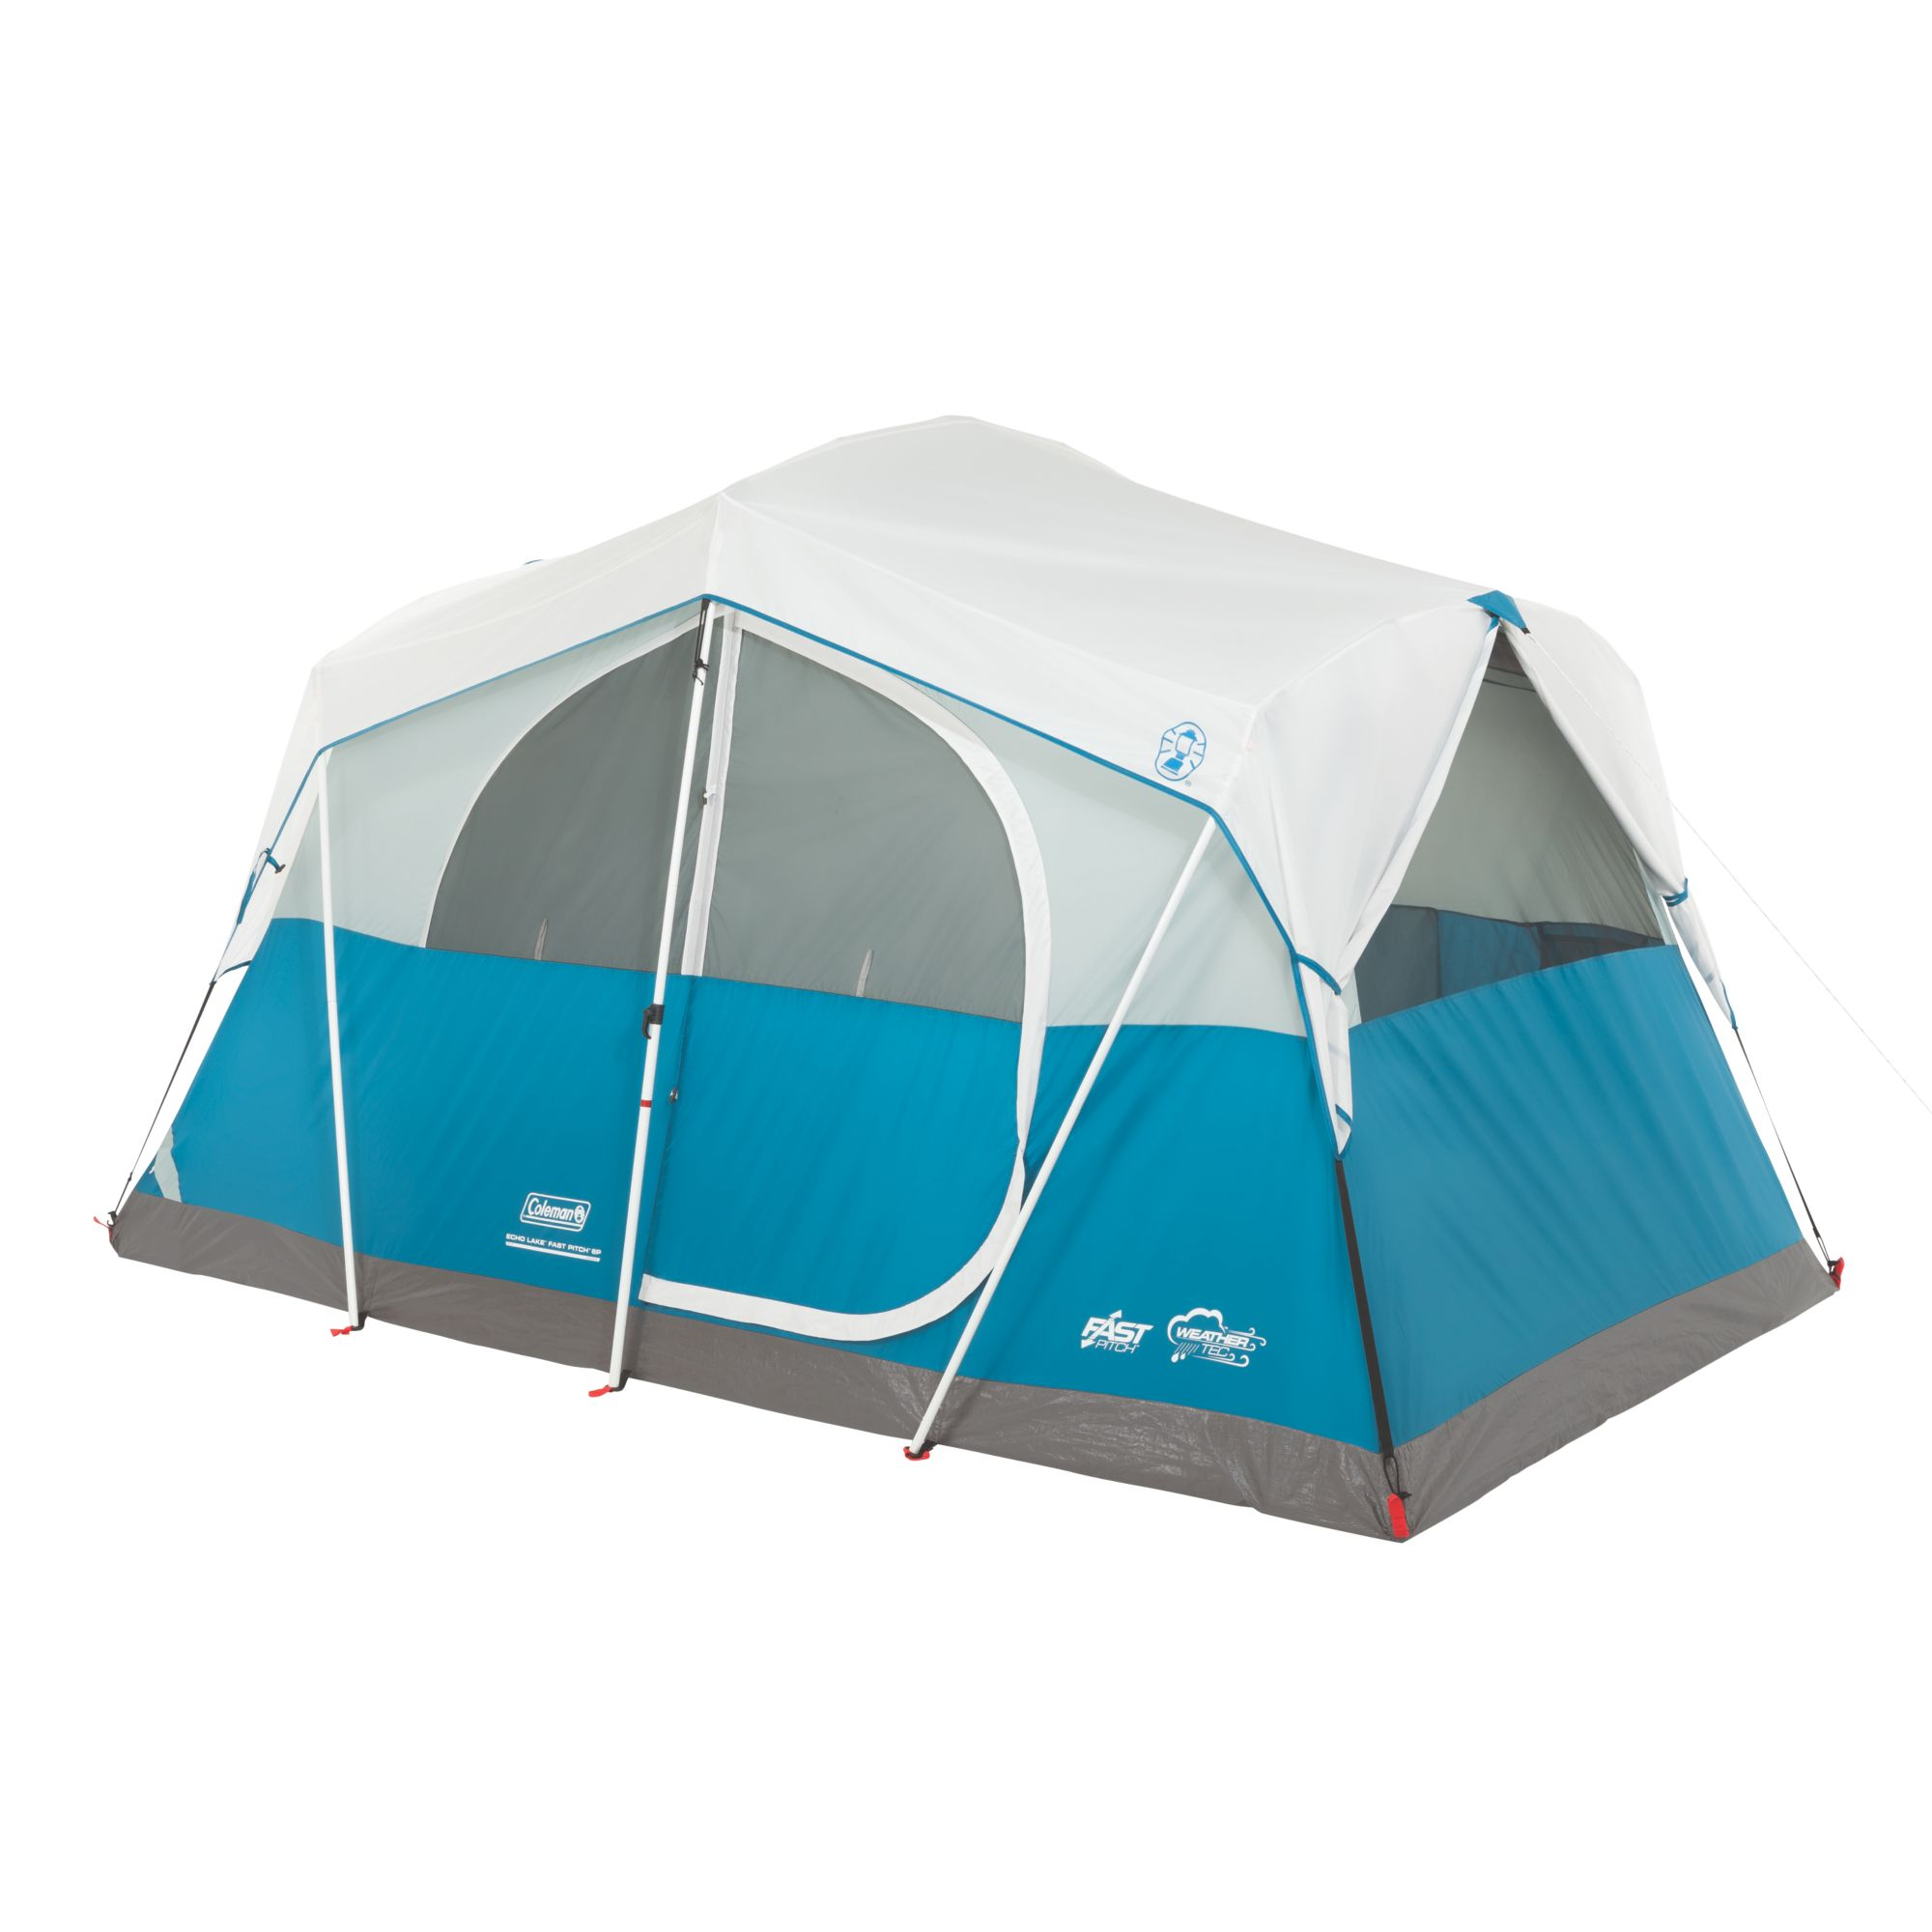 Coleman Echo Lake 6 Person Fast Pitch Cabin Tent w  2' x 2' Cabinet | 12' x 7' by COLEMAN